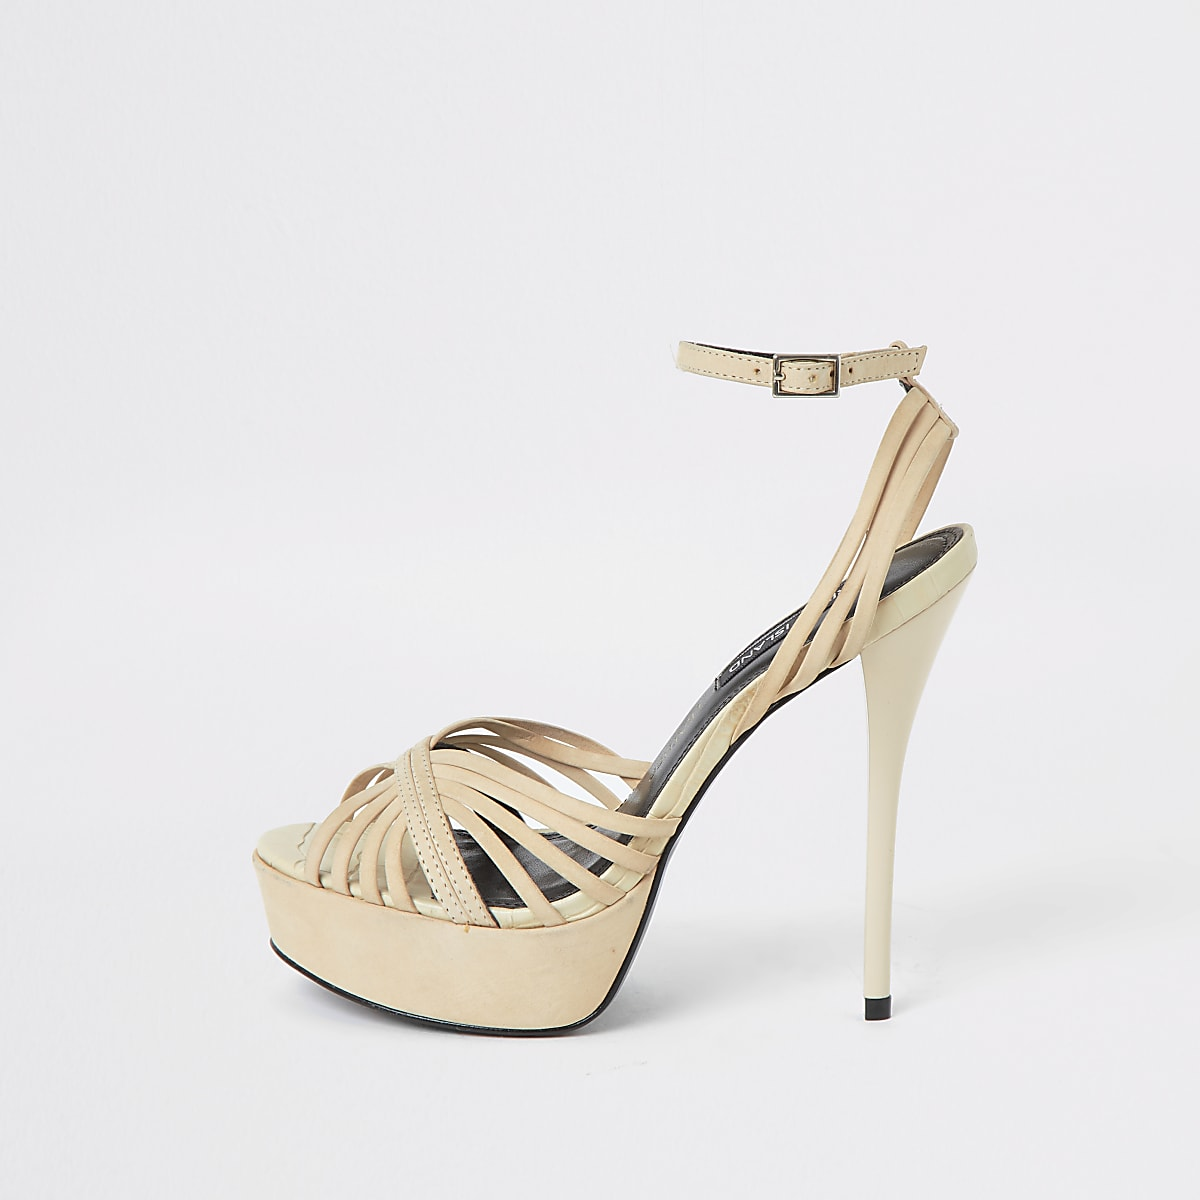 Cream leather strappy platform heel sandal